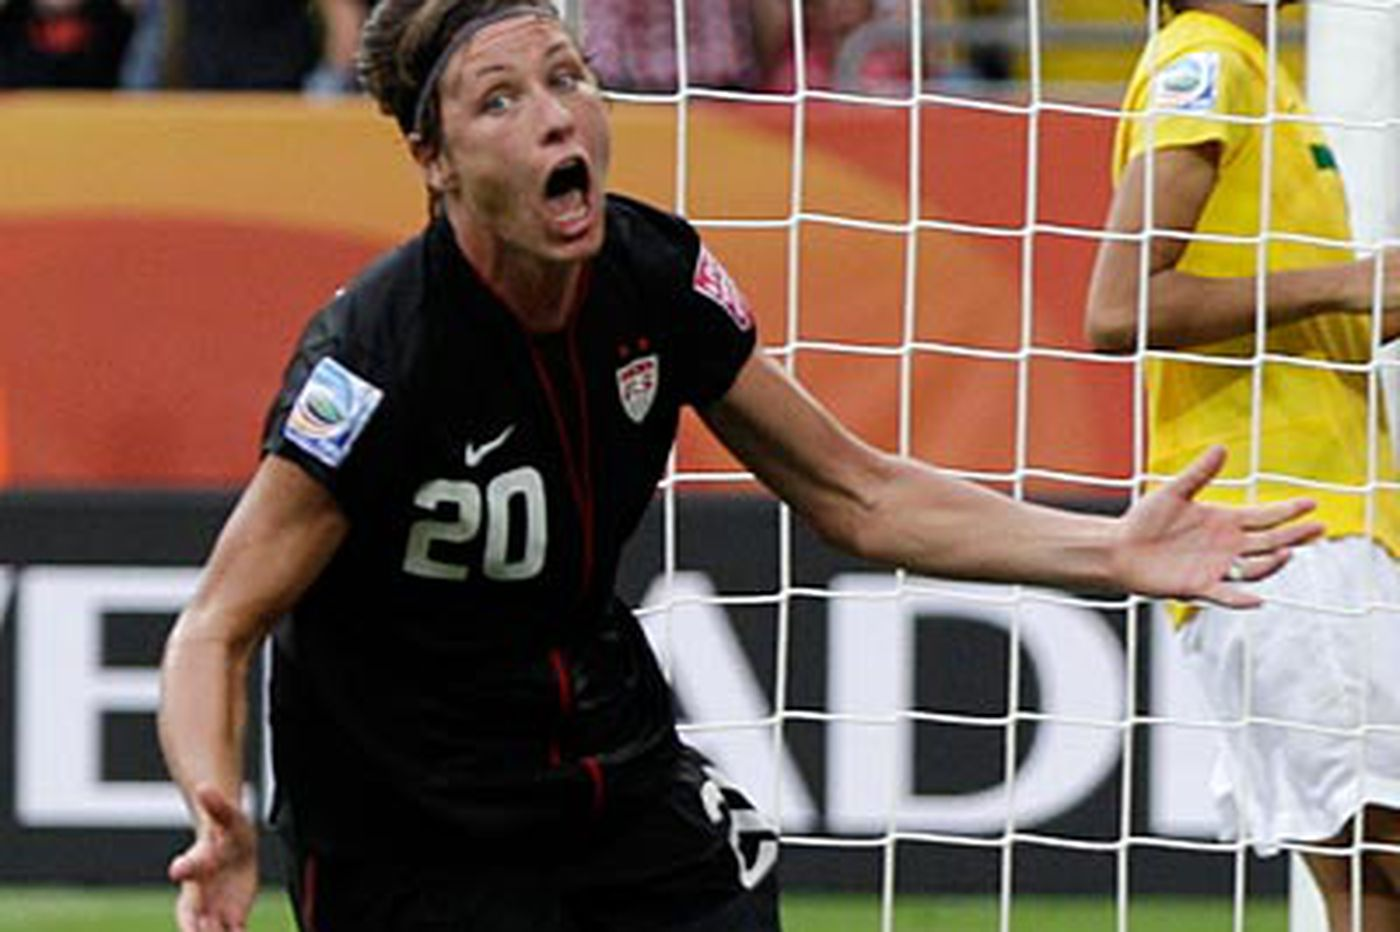 Wambach's late goal sets up historic win